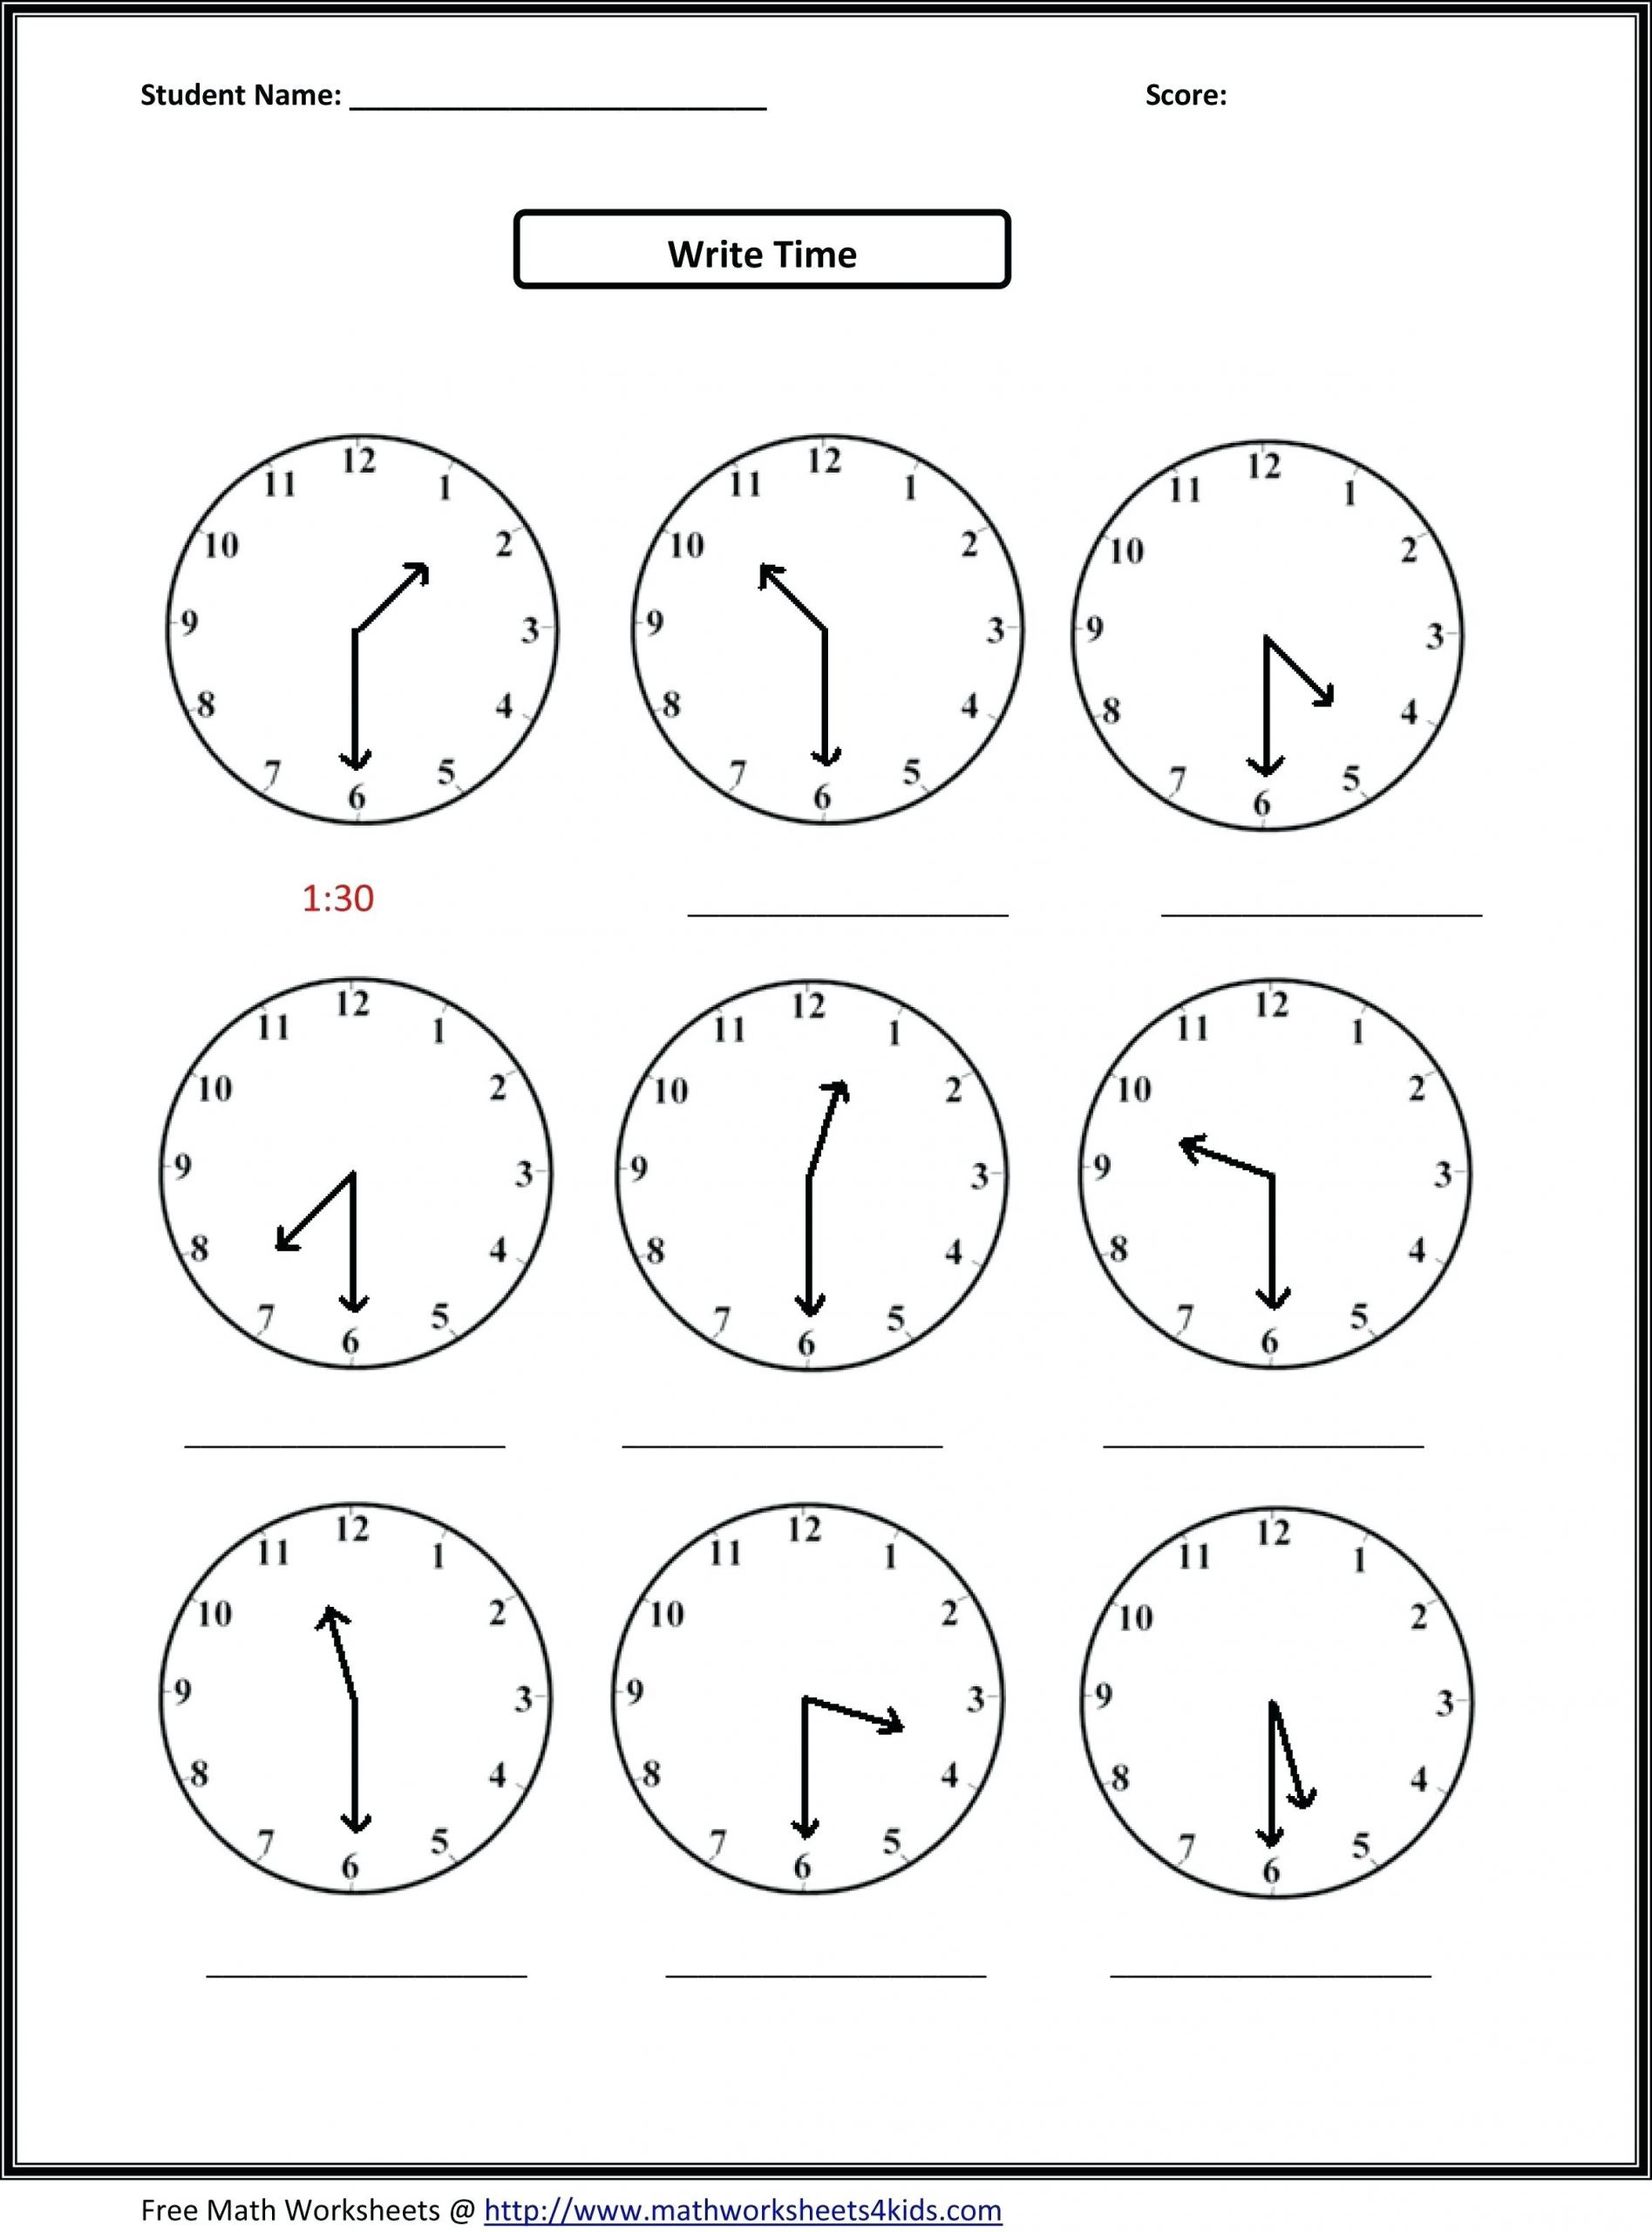 hight resolution of 4 Free Math Worksheets Second Grade 2 Addition Add 3 Single Digit Numbers -  apocalomegaproductions.com